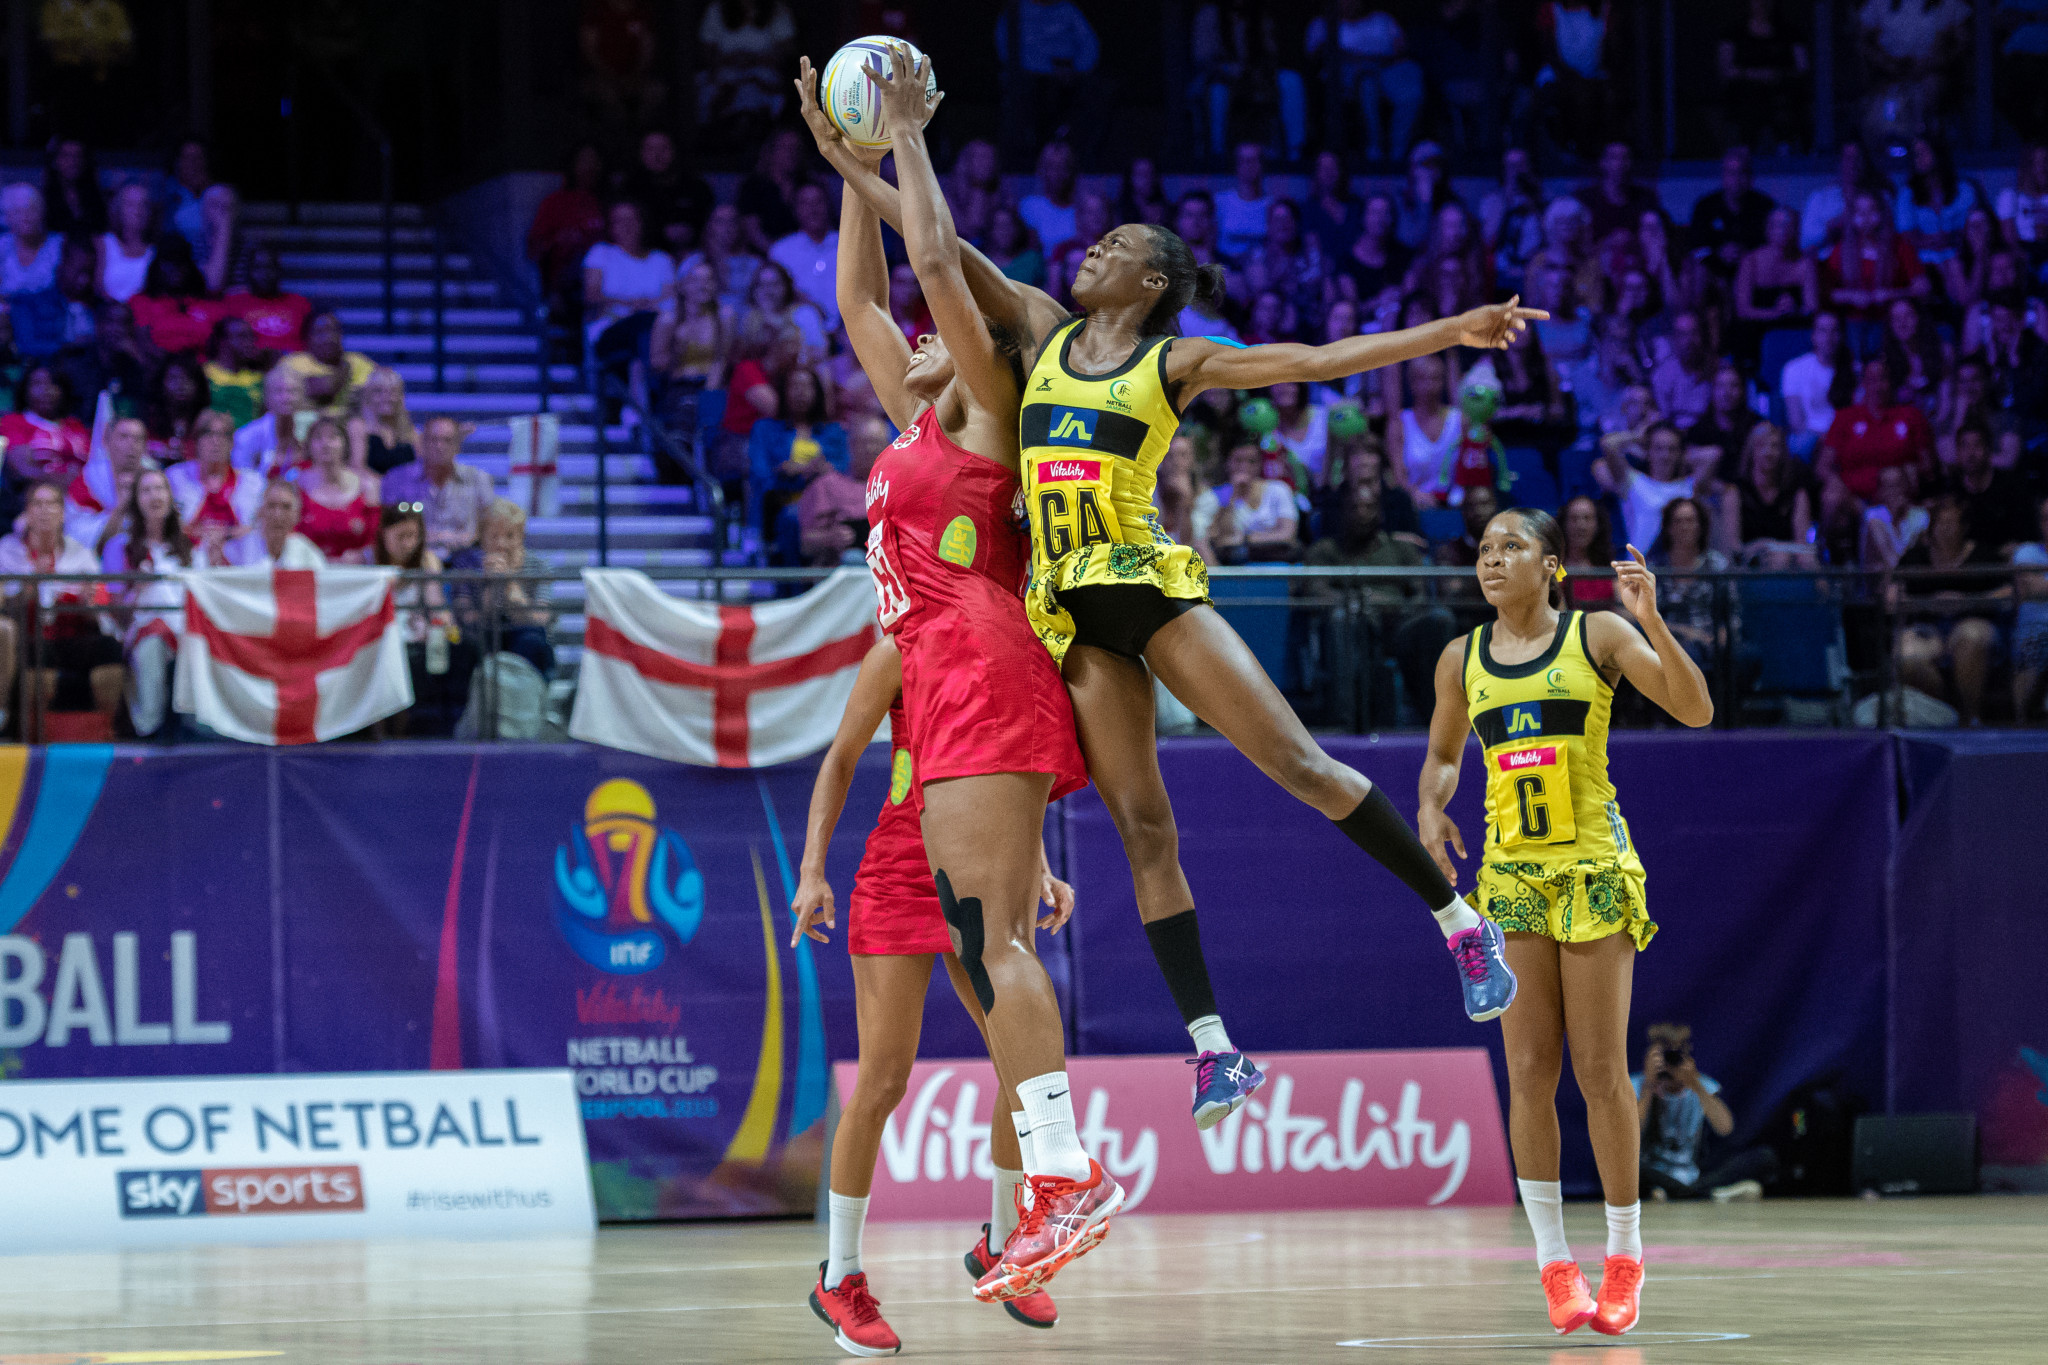 The Netball World Cup began in Liverpool last week ©Getty Images